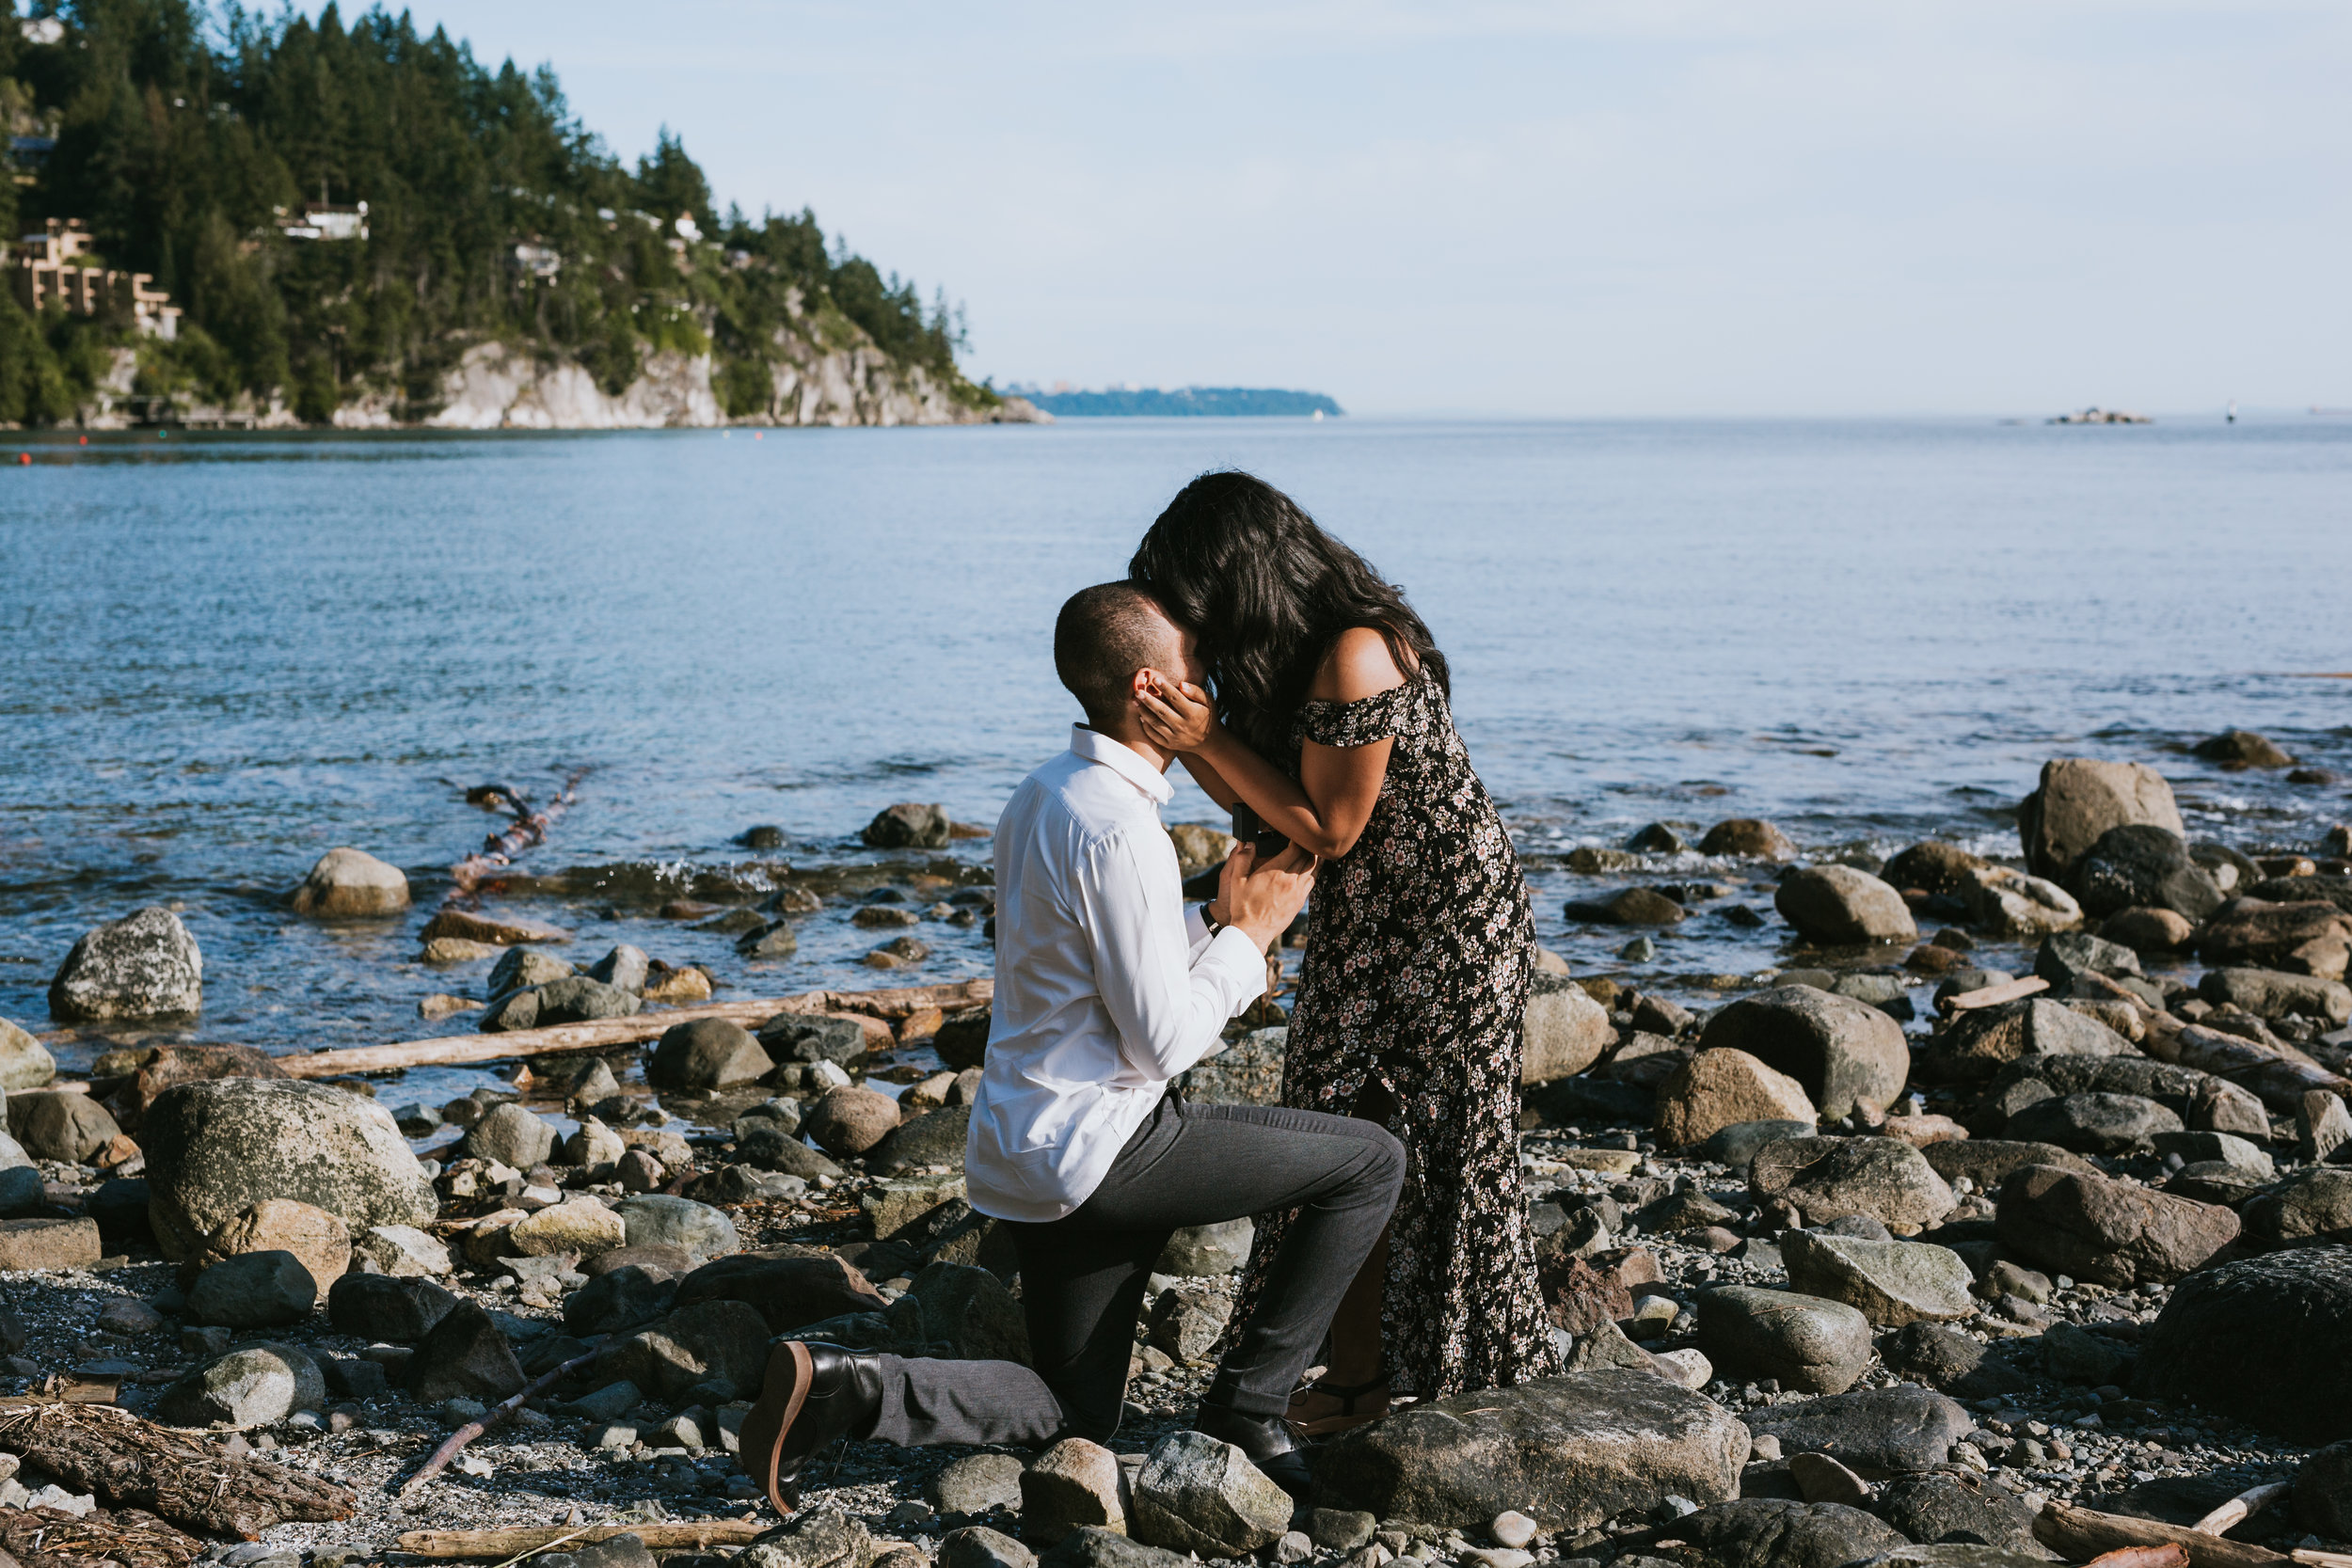 oliver-rabanes-vancouver-surrey-whytecliff-park-proposal-engagement-photography-15.JPG